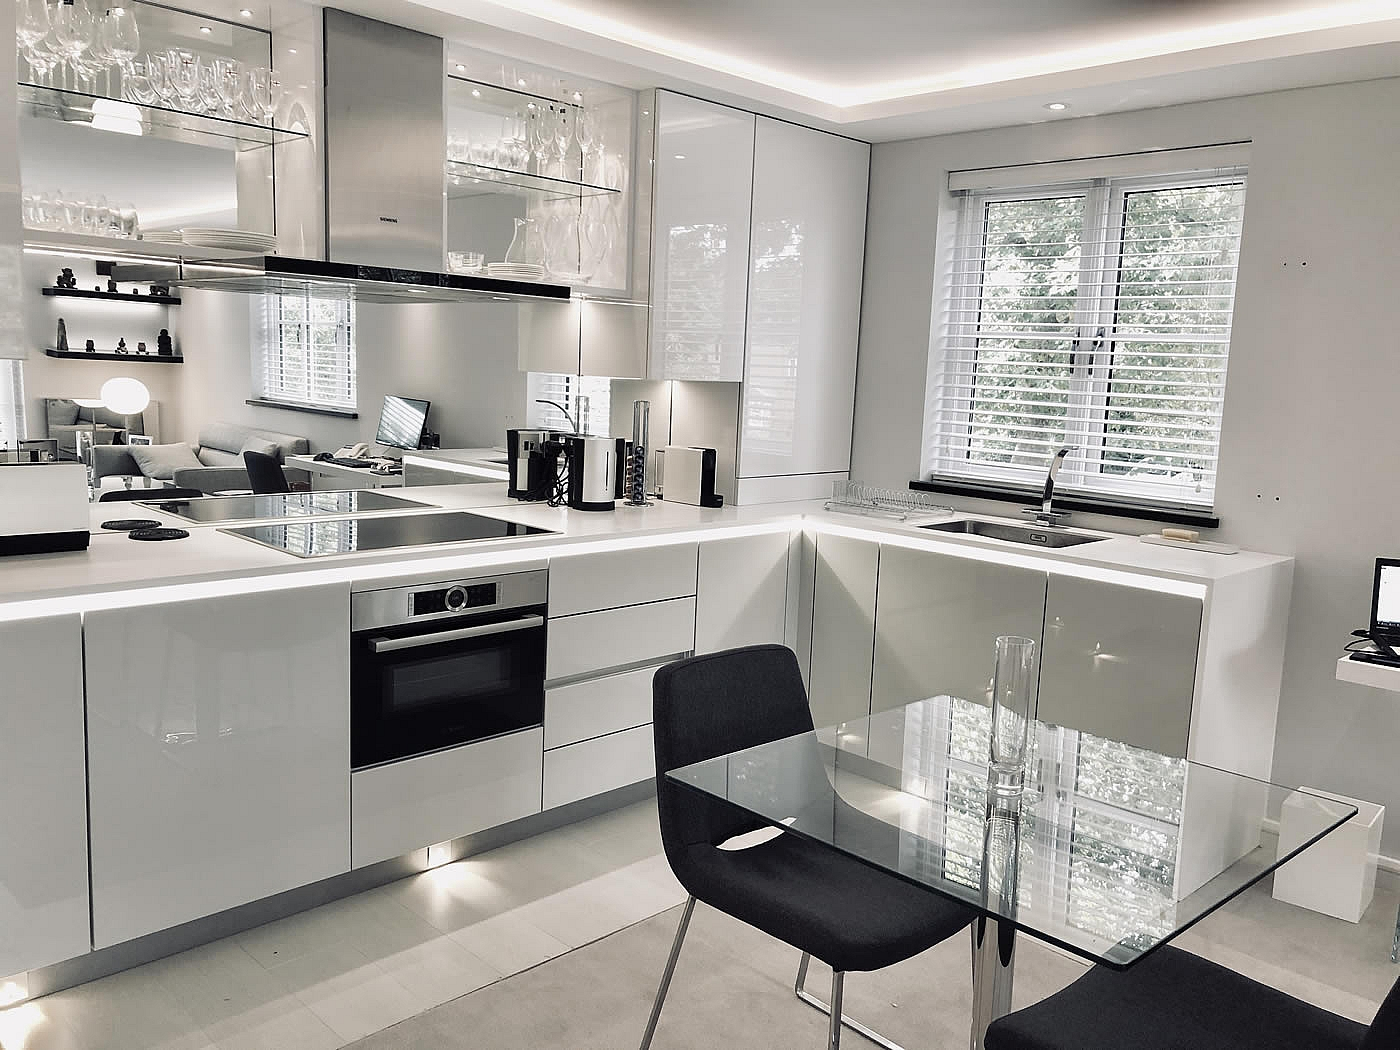 Designer White Kitchen for London pied-a-terre apartment, units are Hacker-Systemat high gloss grey lacquer with the upper units in high gloss white